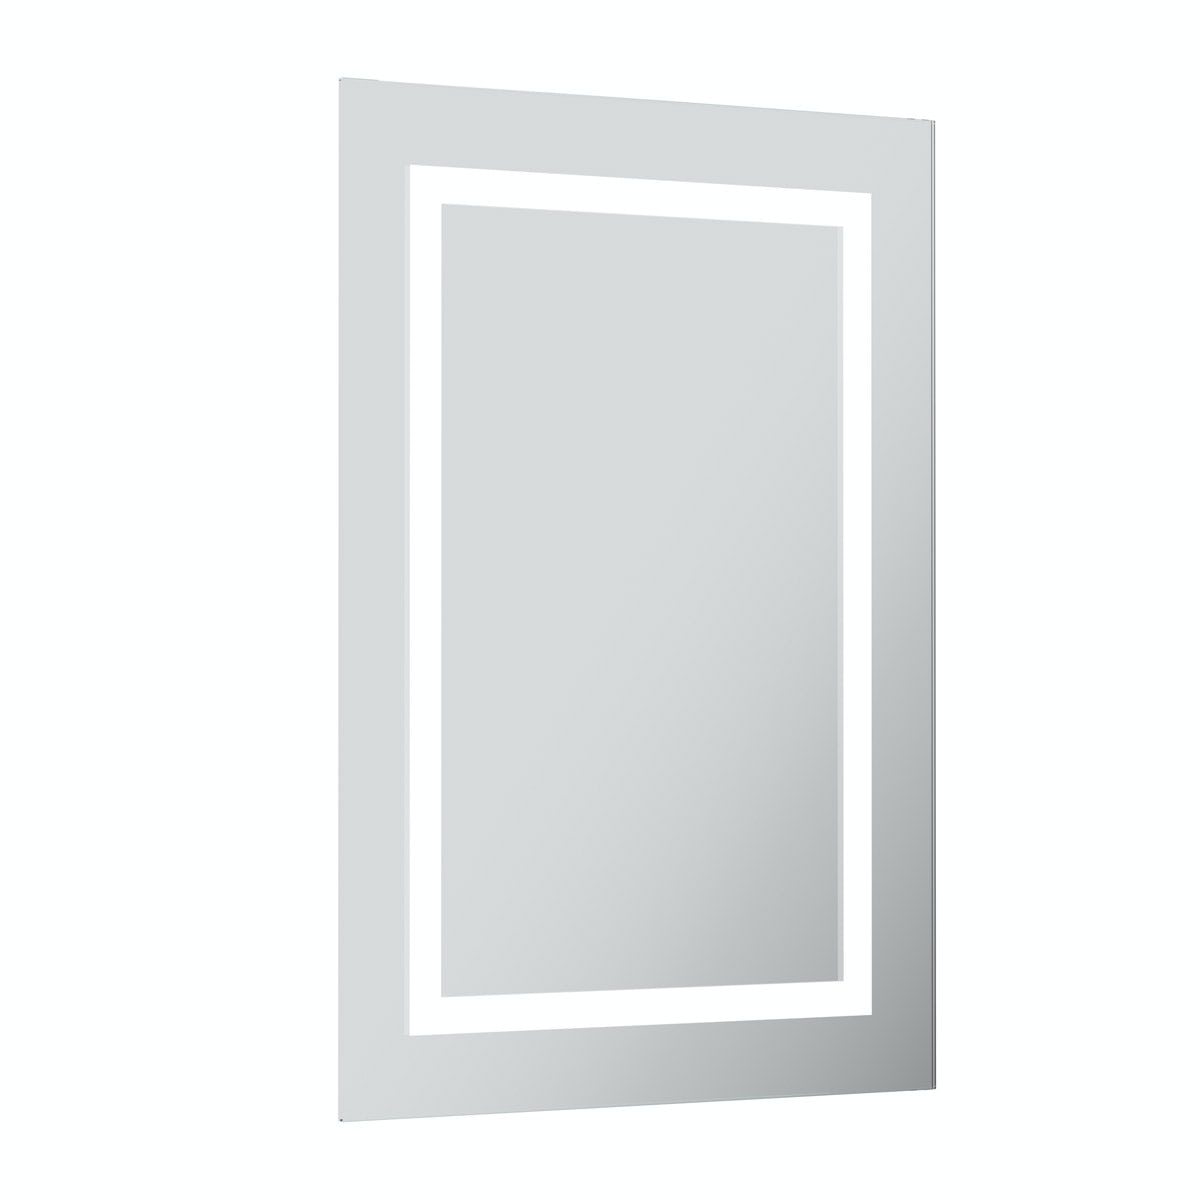 Mode Shine rectangular LED mirror